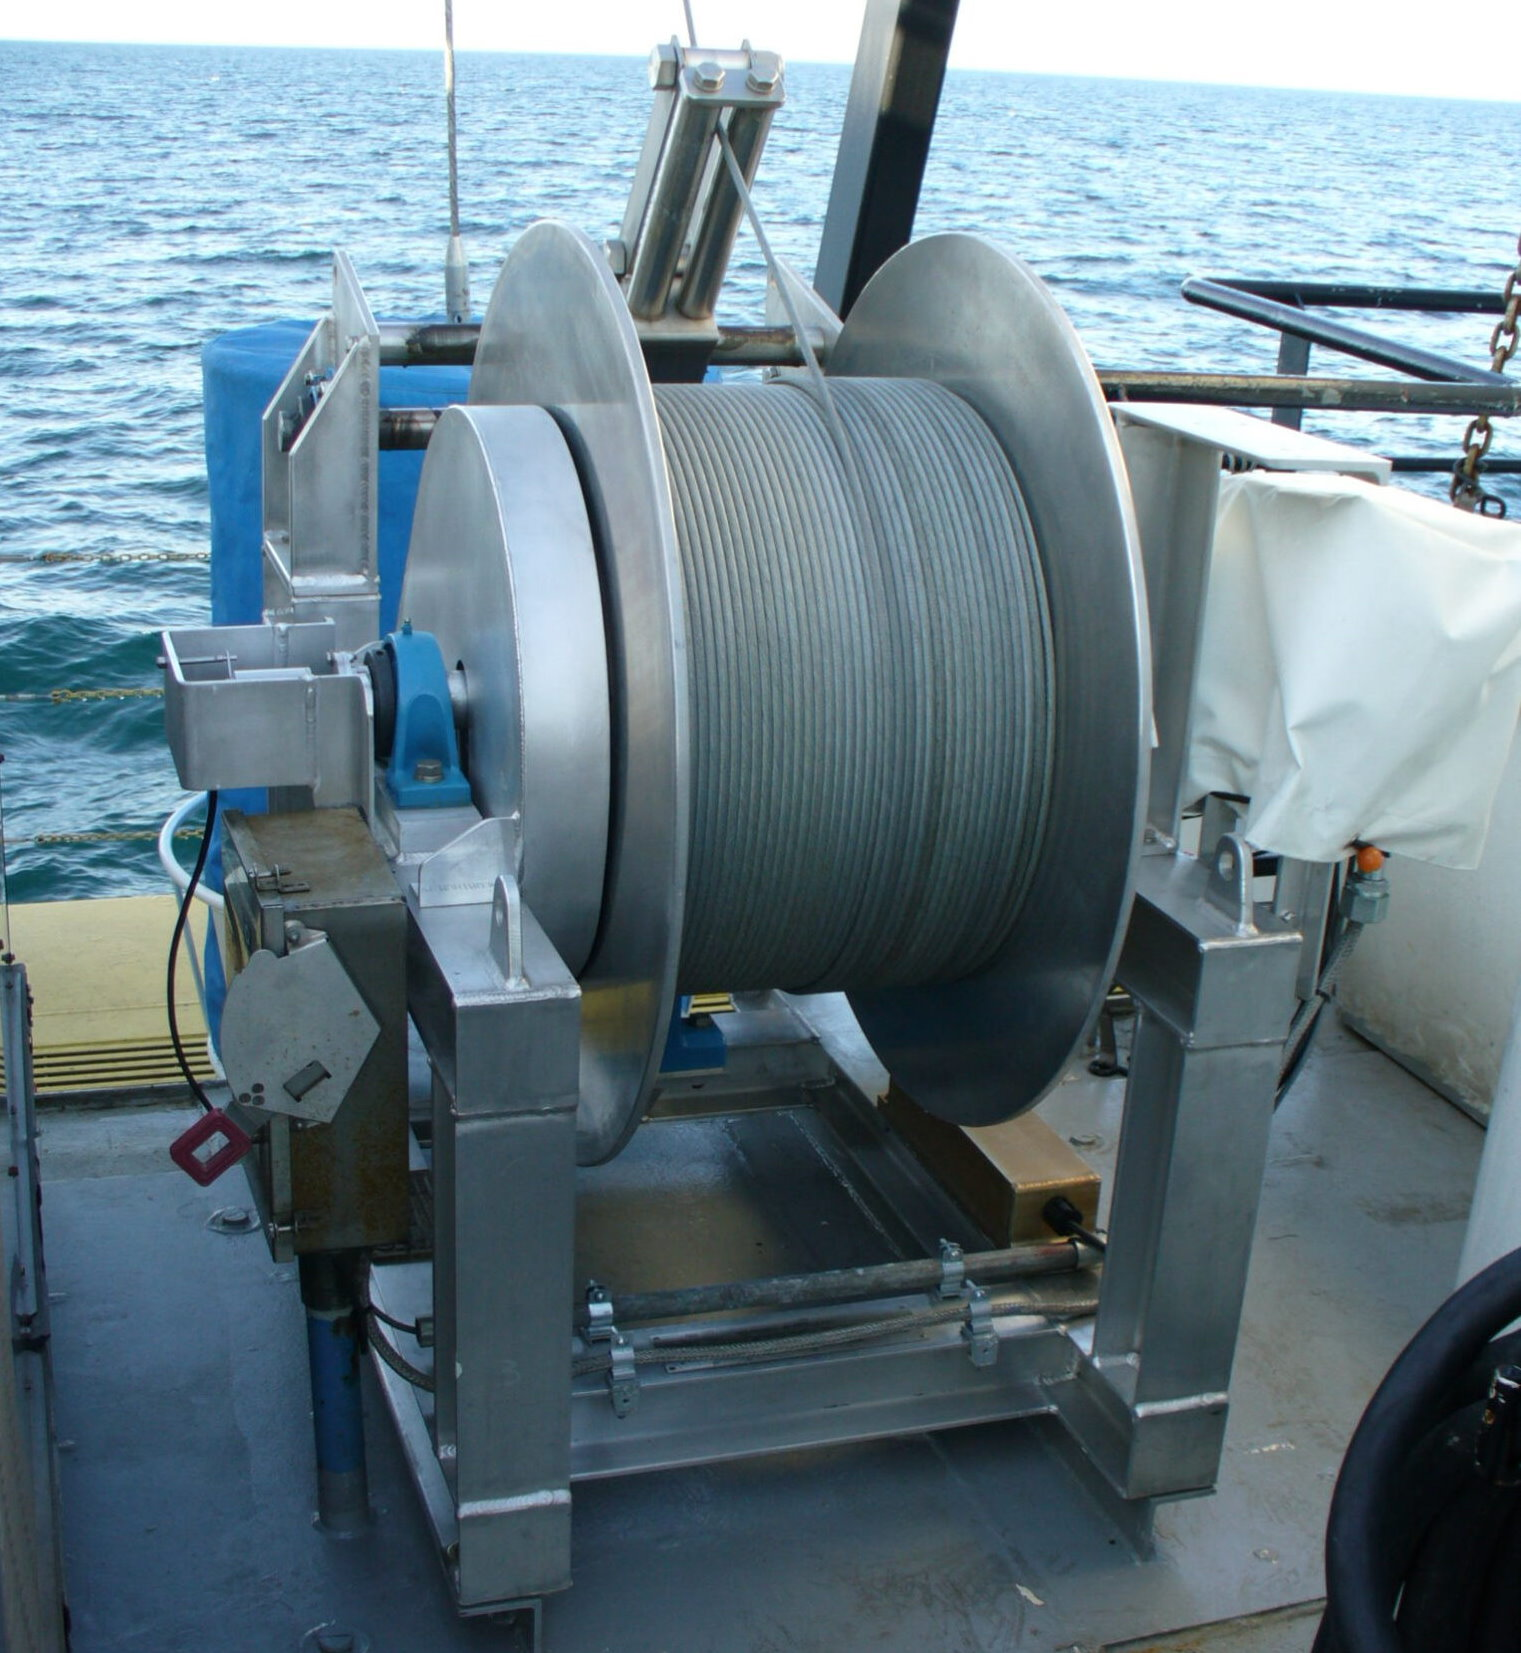 InterOcean Systems Winch Model 10031